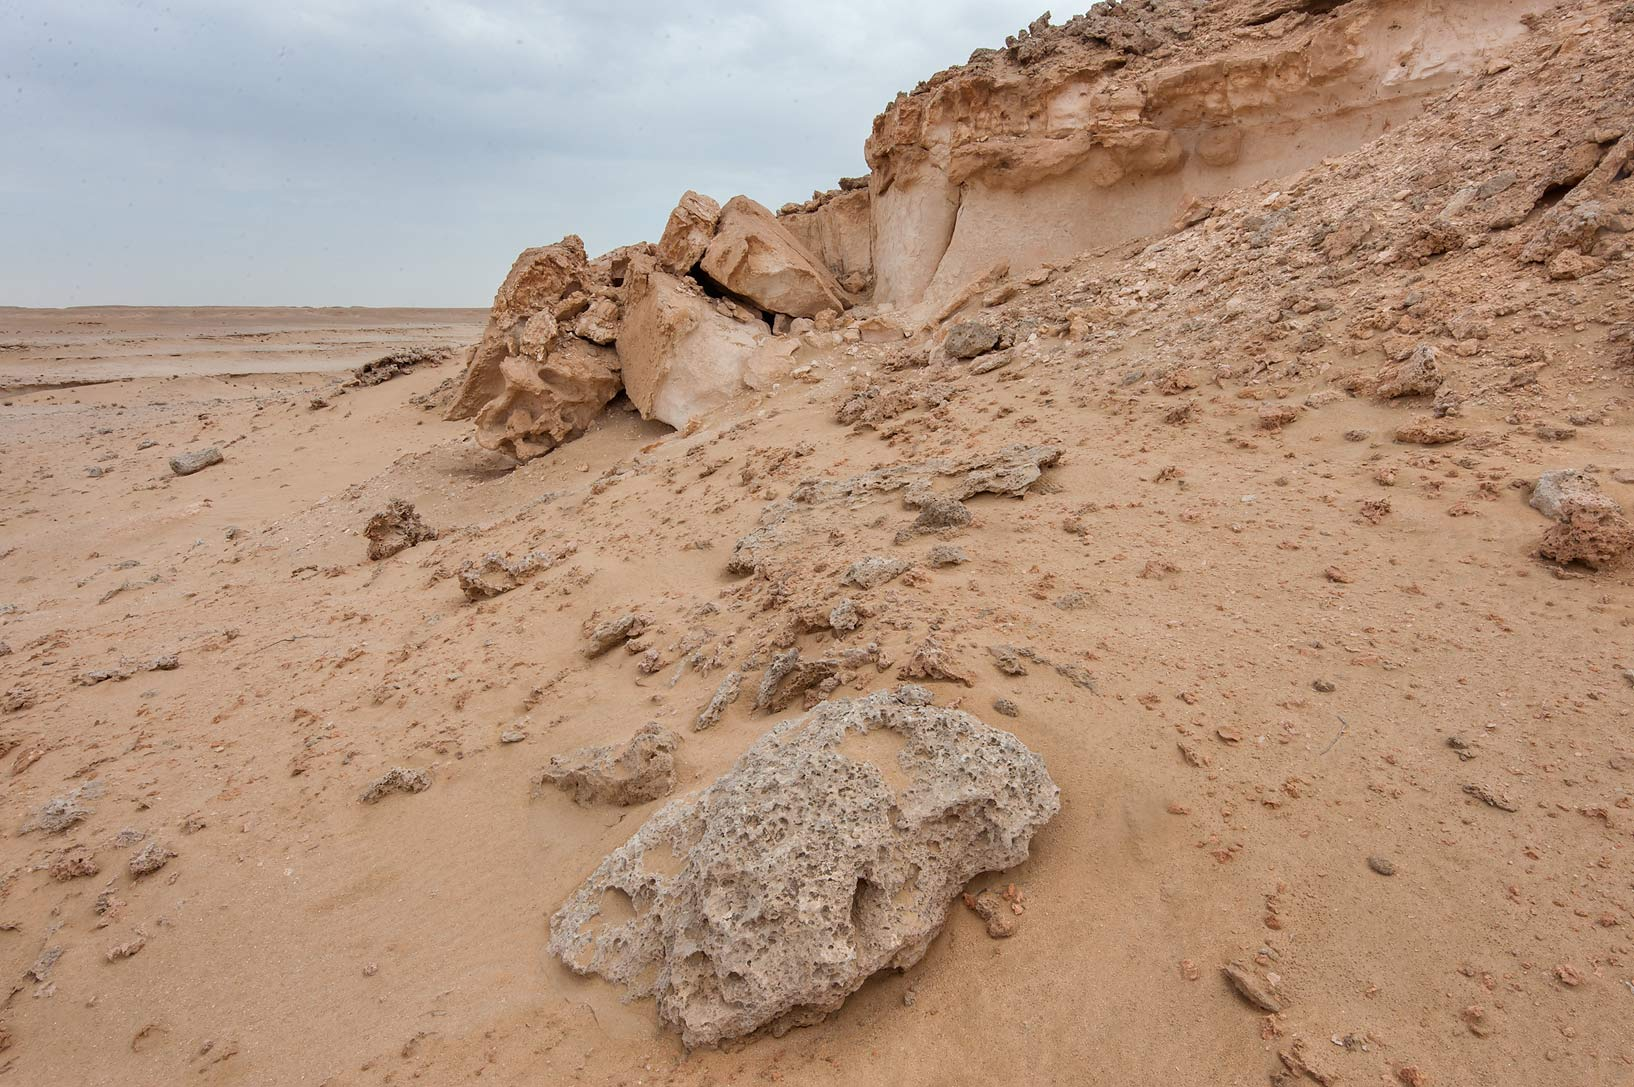 Weathered limestone cliffs in Harrarah (Al Kharrarah). Southern Qatar